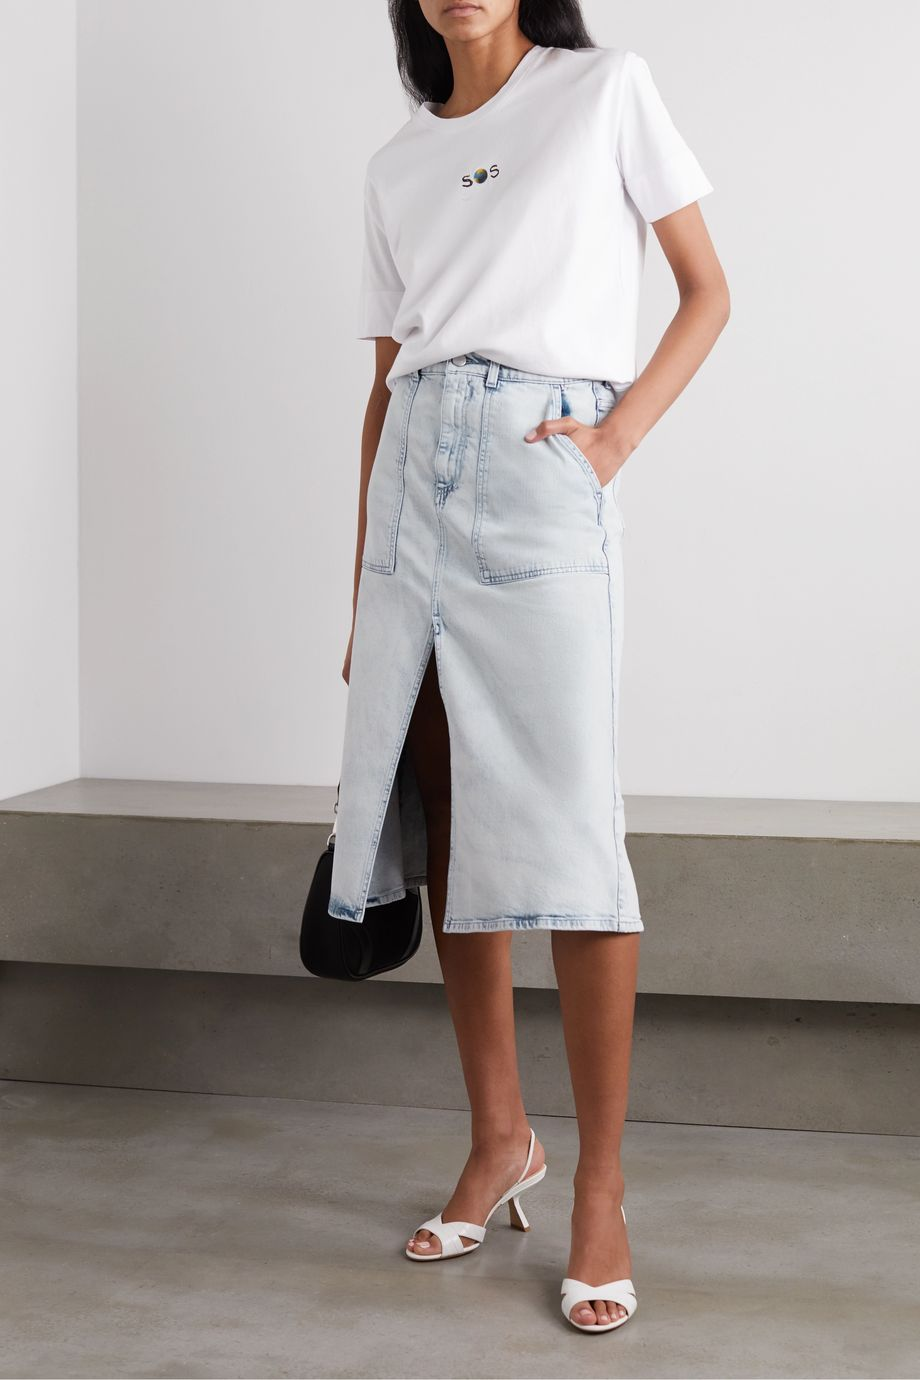 Stella McCartney + NET SUSTAIN paneled organic denim skirt